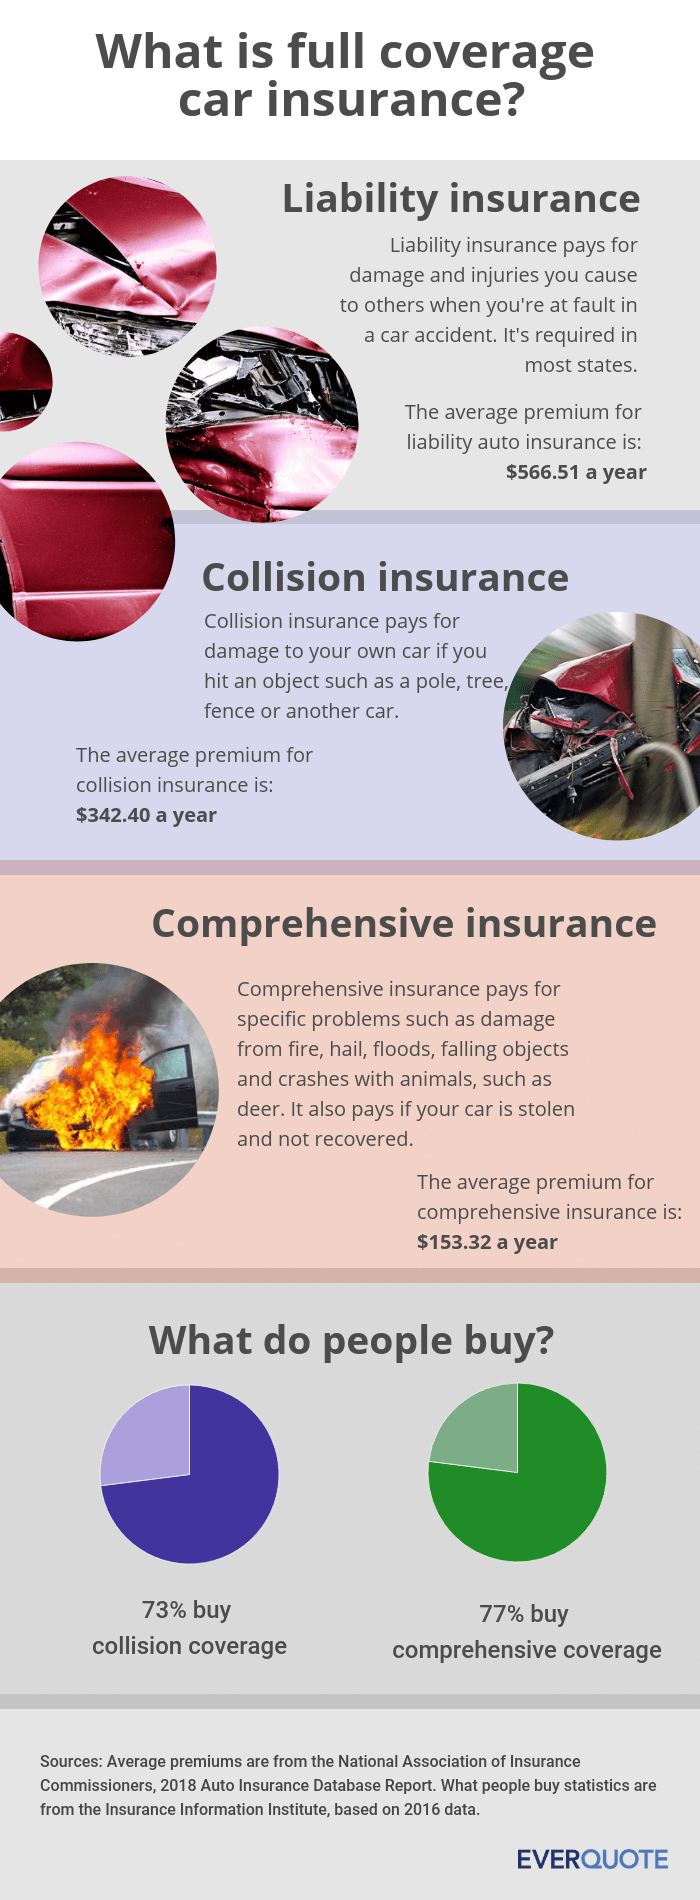 What is full coverage car insurance